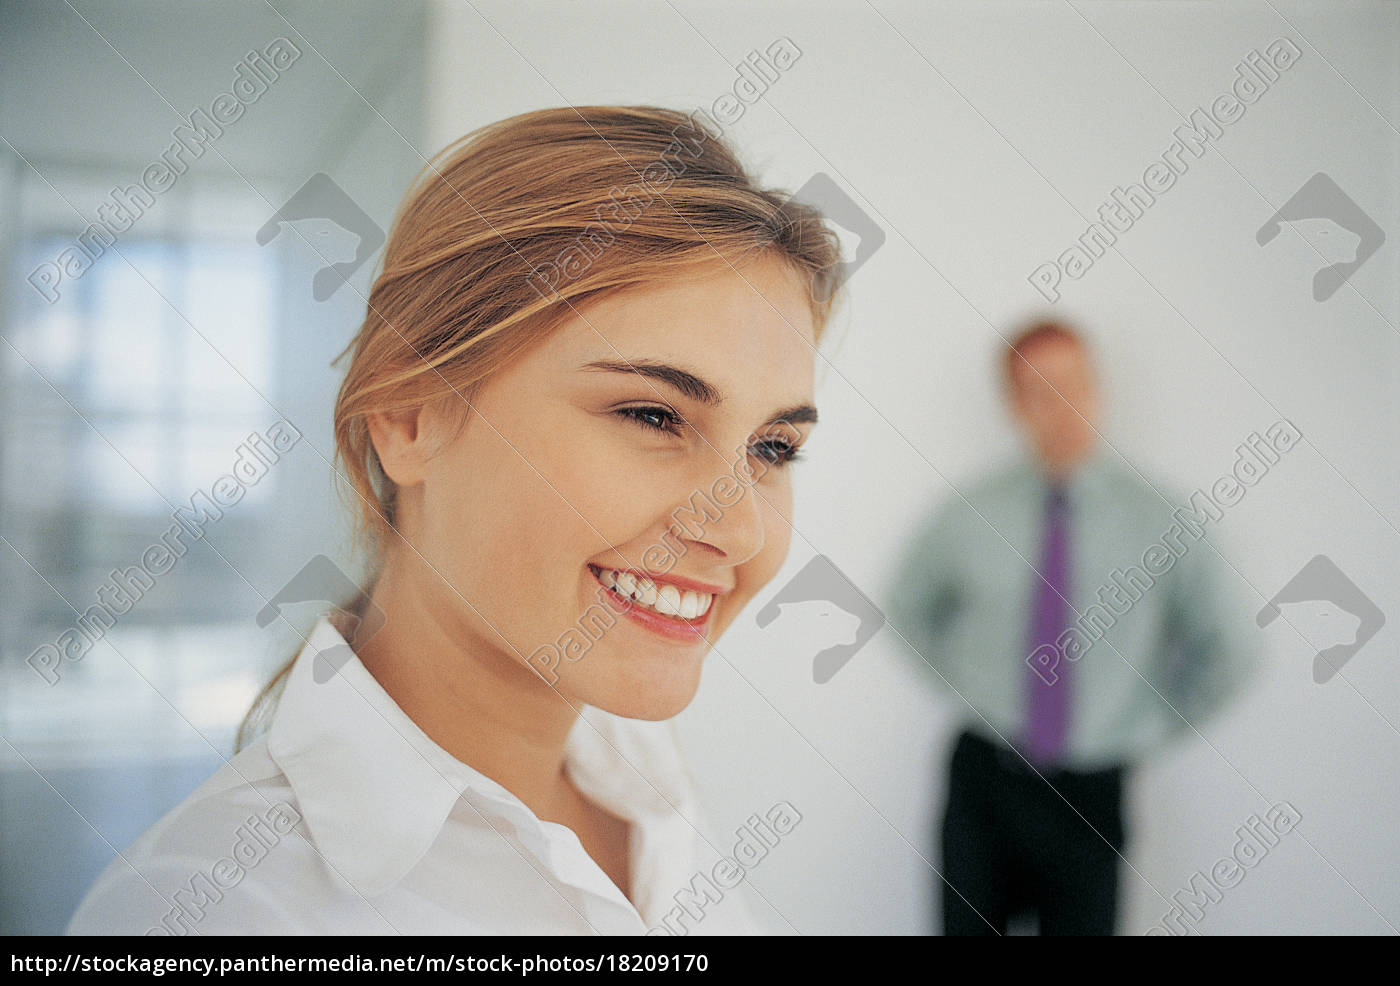 close, up, of, businesswoman, smiling - 18209170